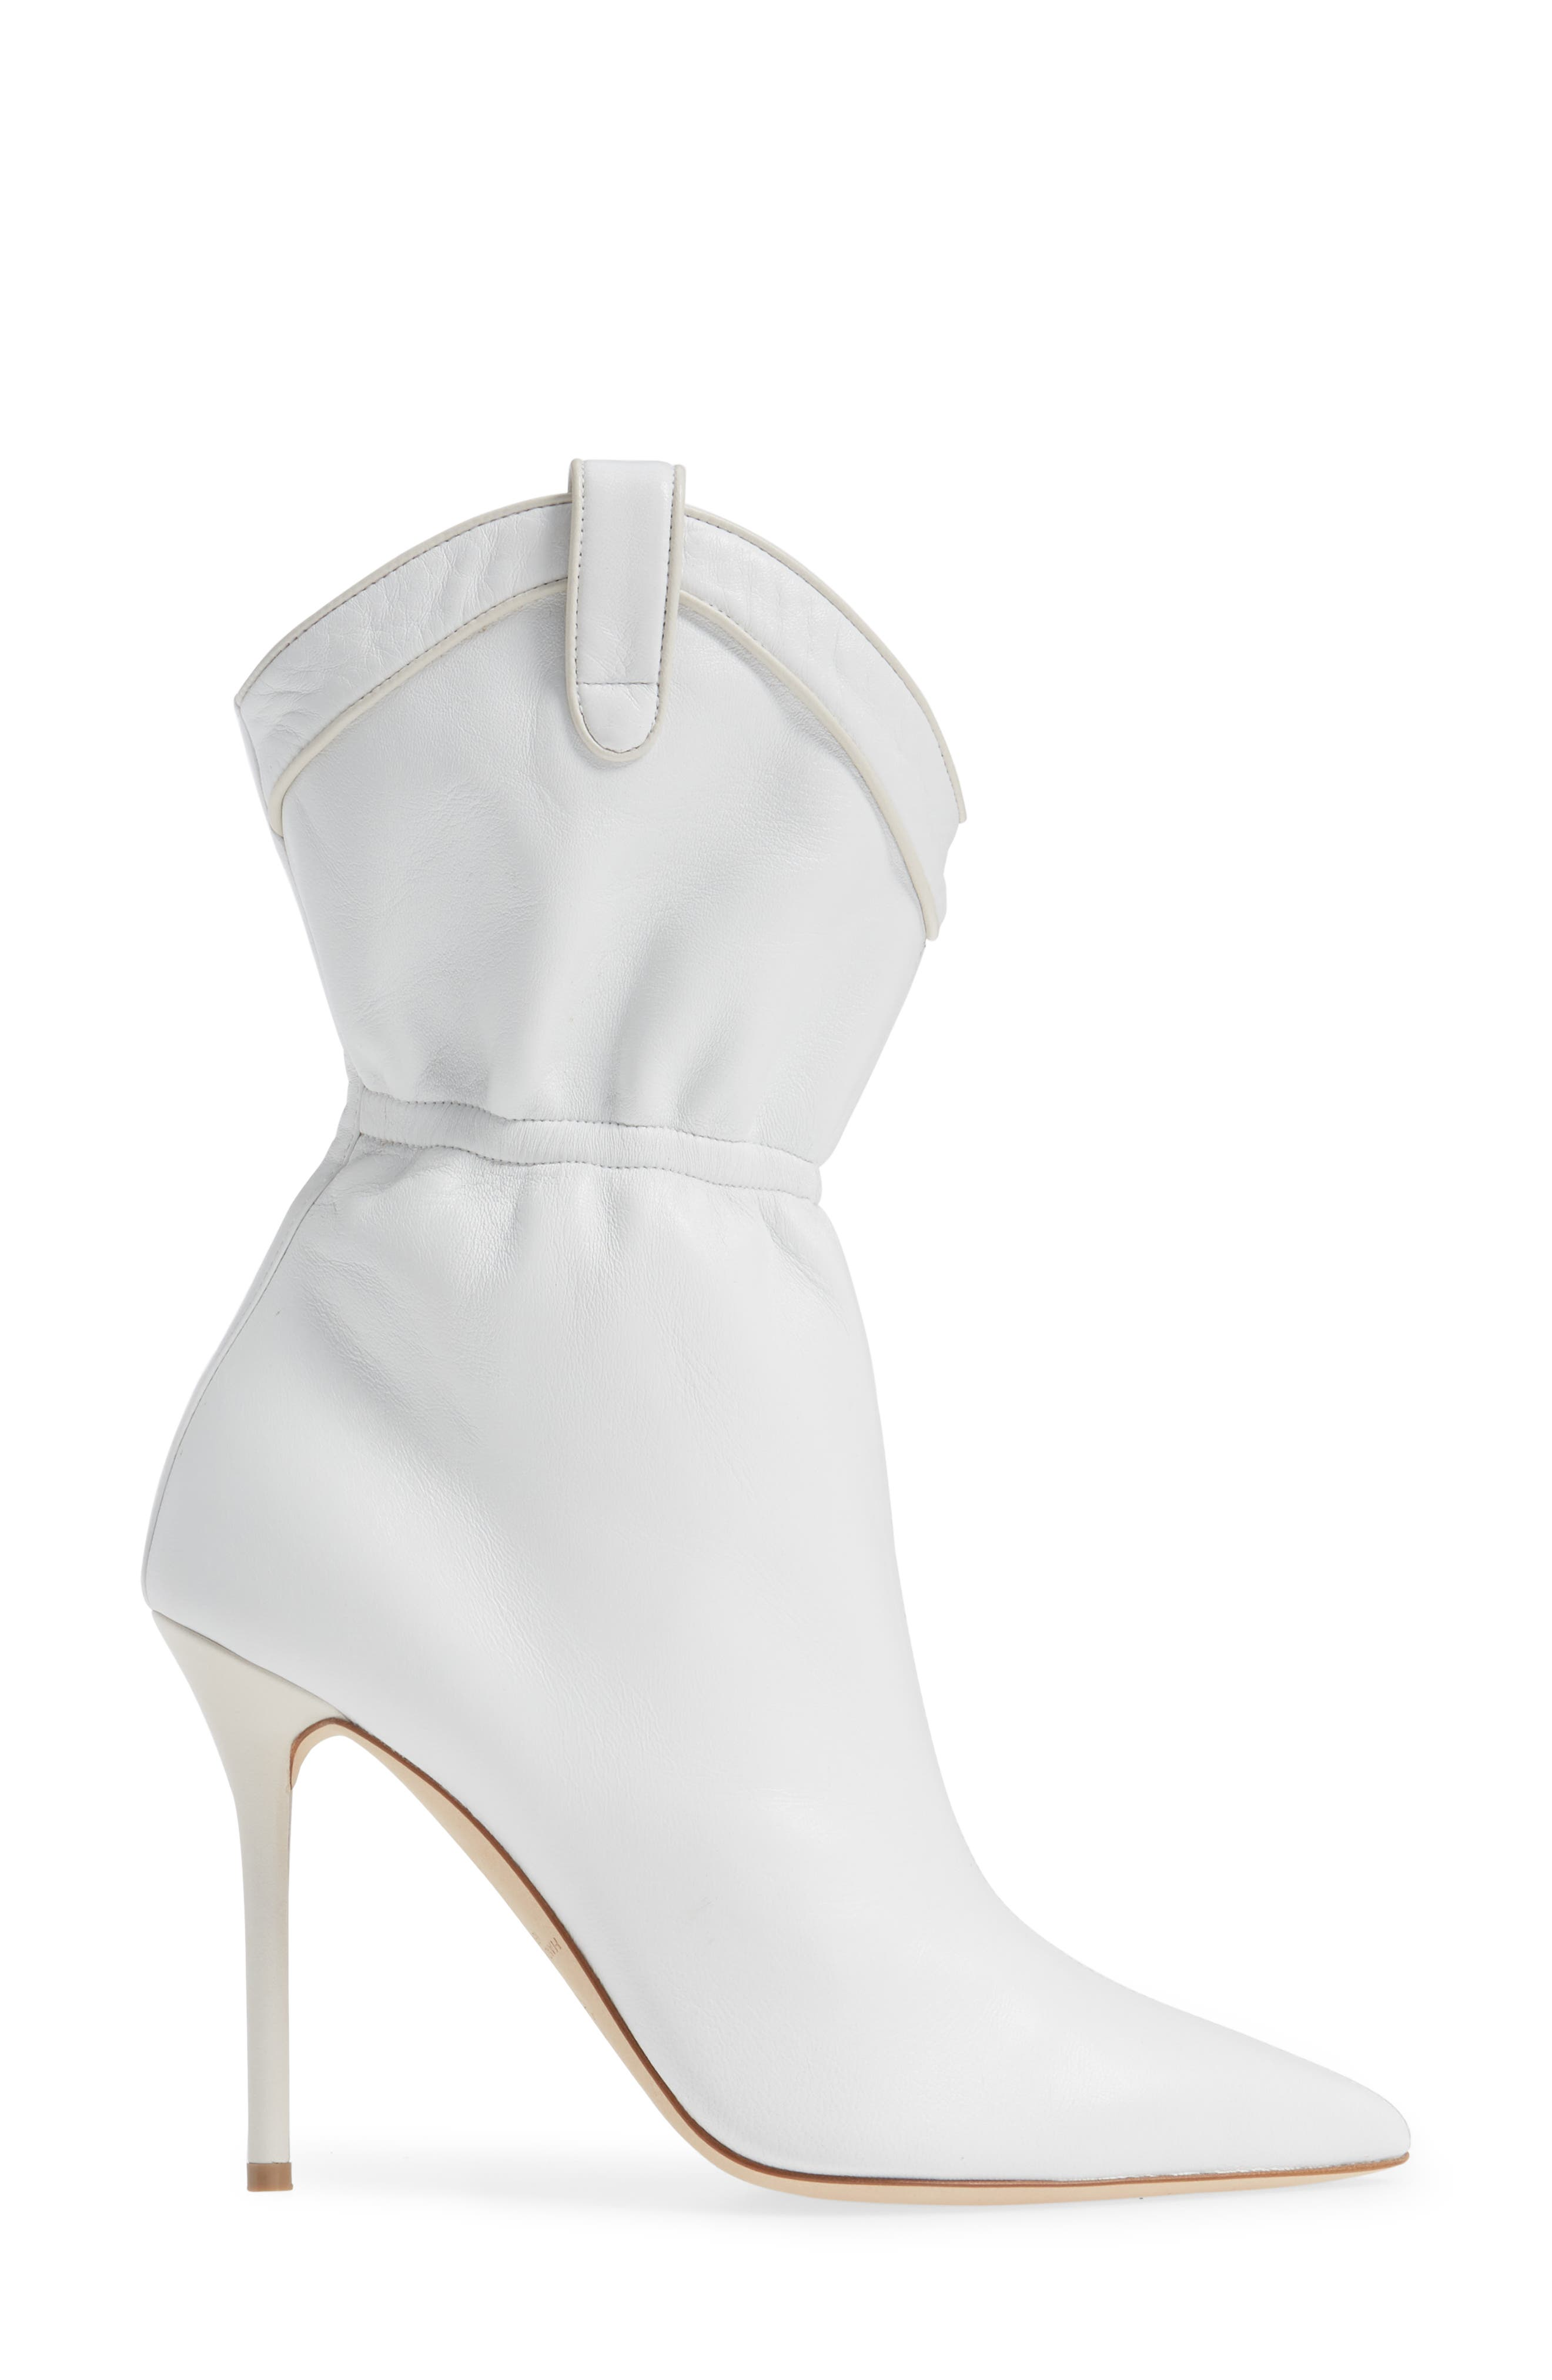 MALONE SOULIERS,                             Daisy Cinched Bootie,                             Alternate thumbnail 3, color,                             WHITE LEATHER